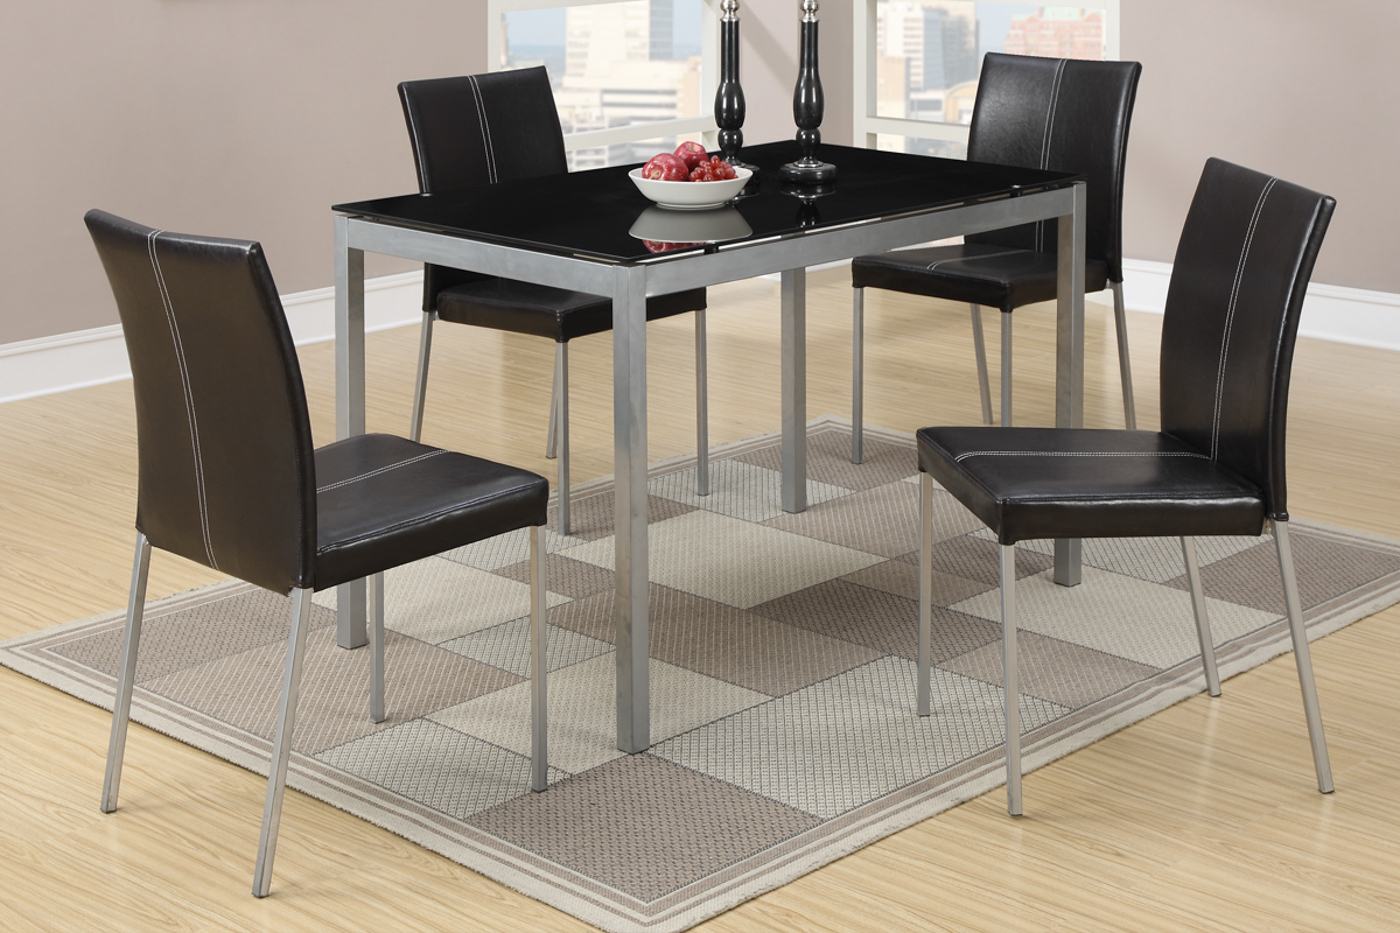 Silver Metal Dining Table and Chair Set - Steal-A-Sofa Furniture ...